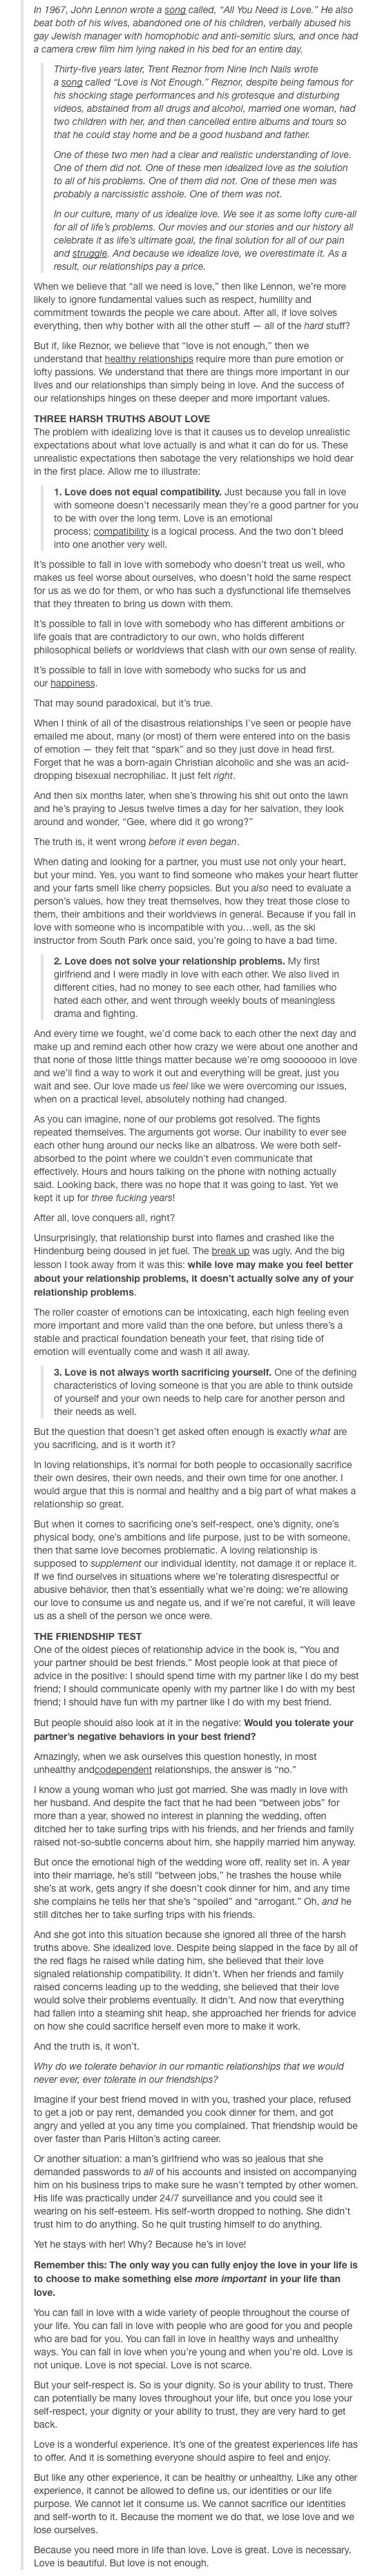 All We Need Is Love vs. Love Is Never Enough | shit. this was a really good read. it was difficult, but necessary, and I'm pinning it so I can read it again and again. I don't want to forget this.